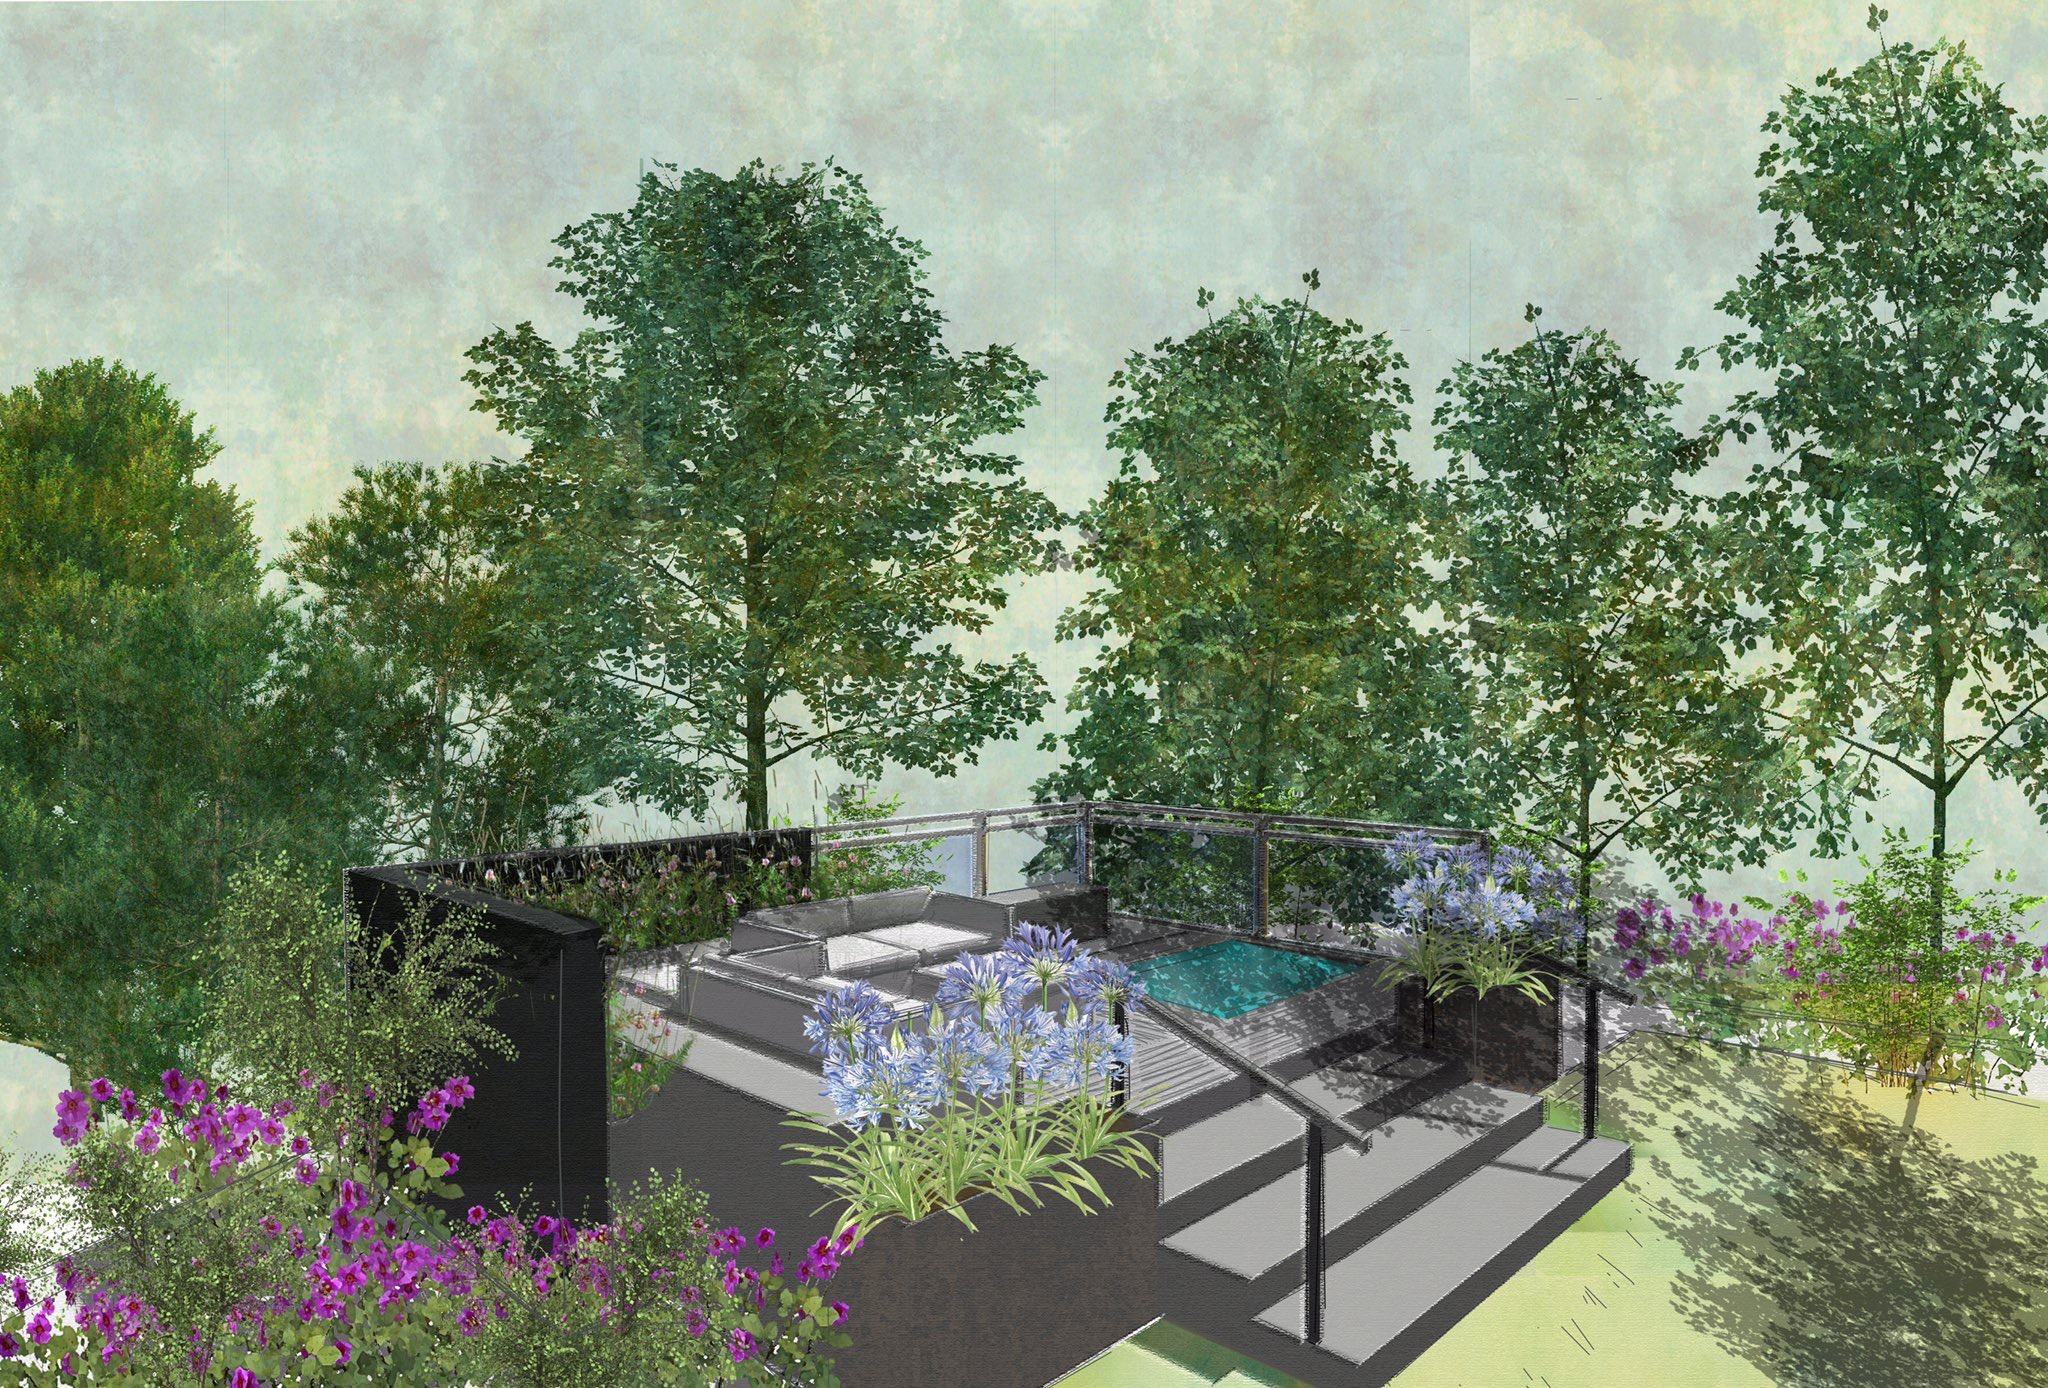 london college of garden design graduates win top garden design award